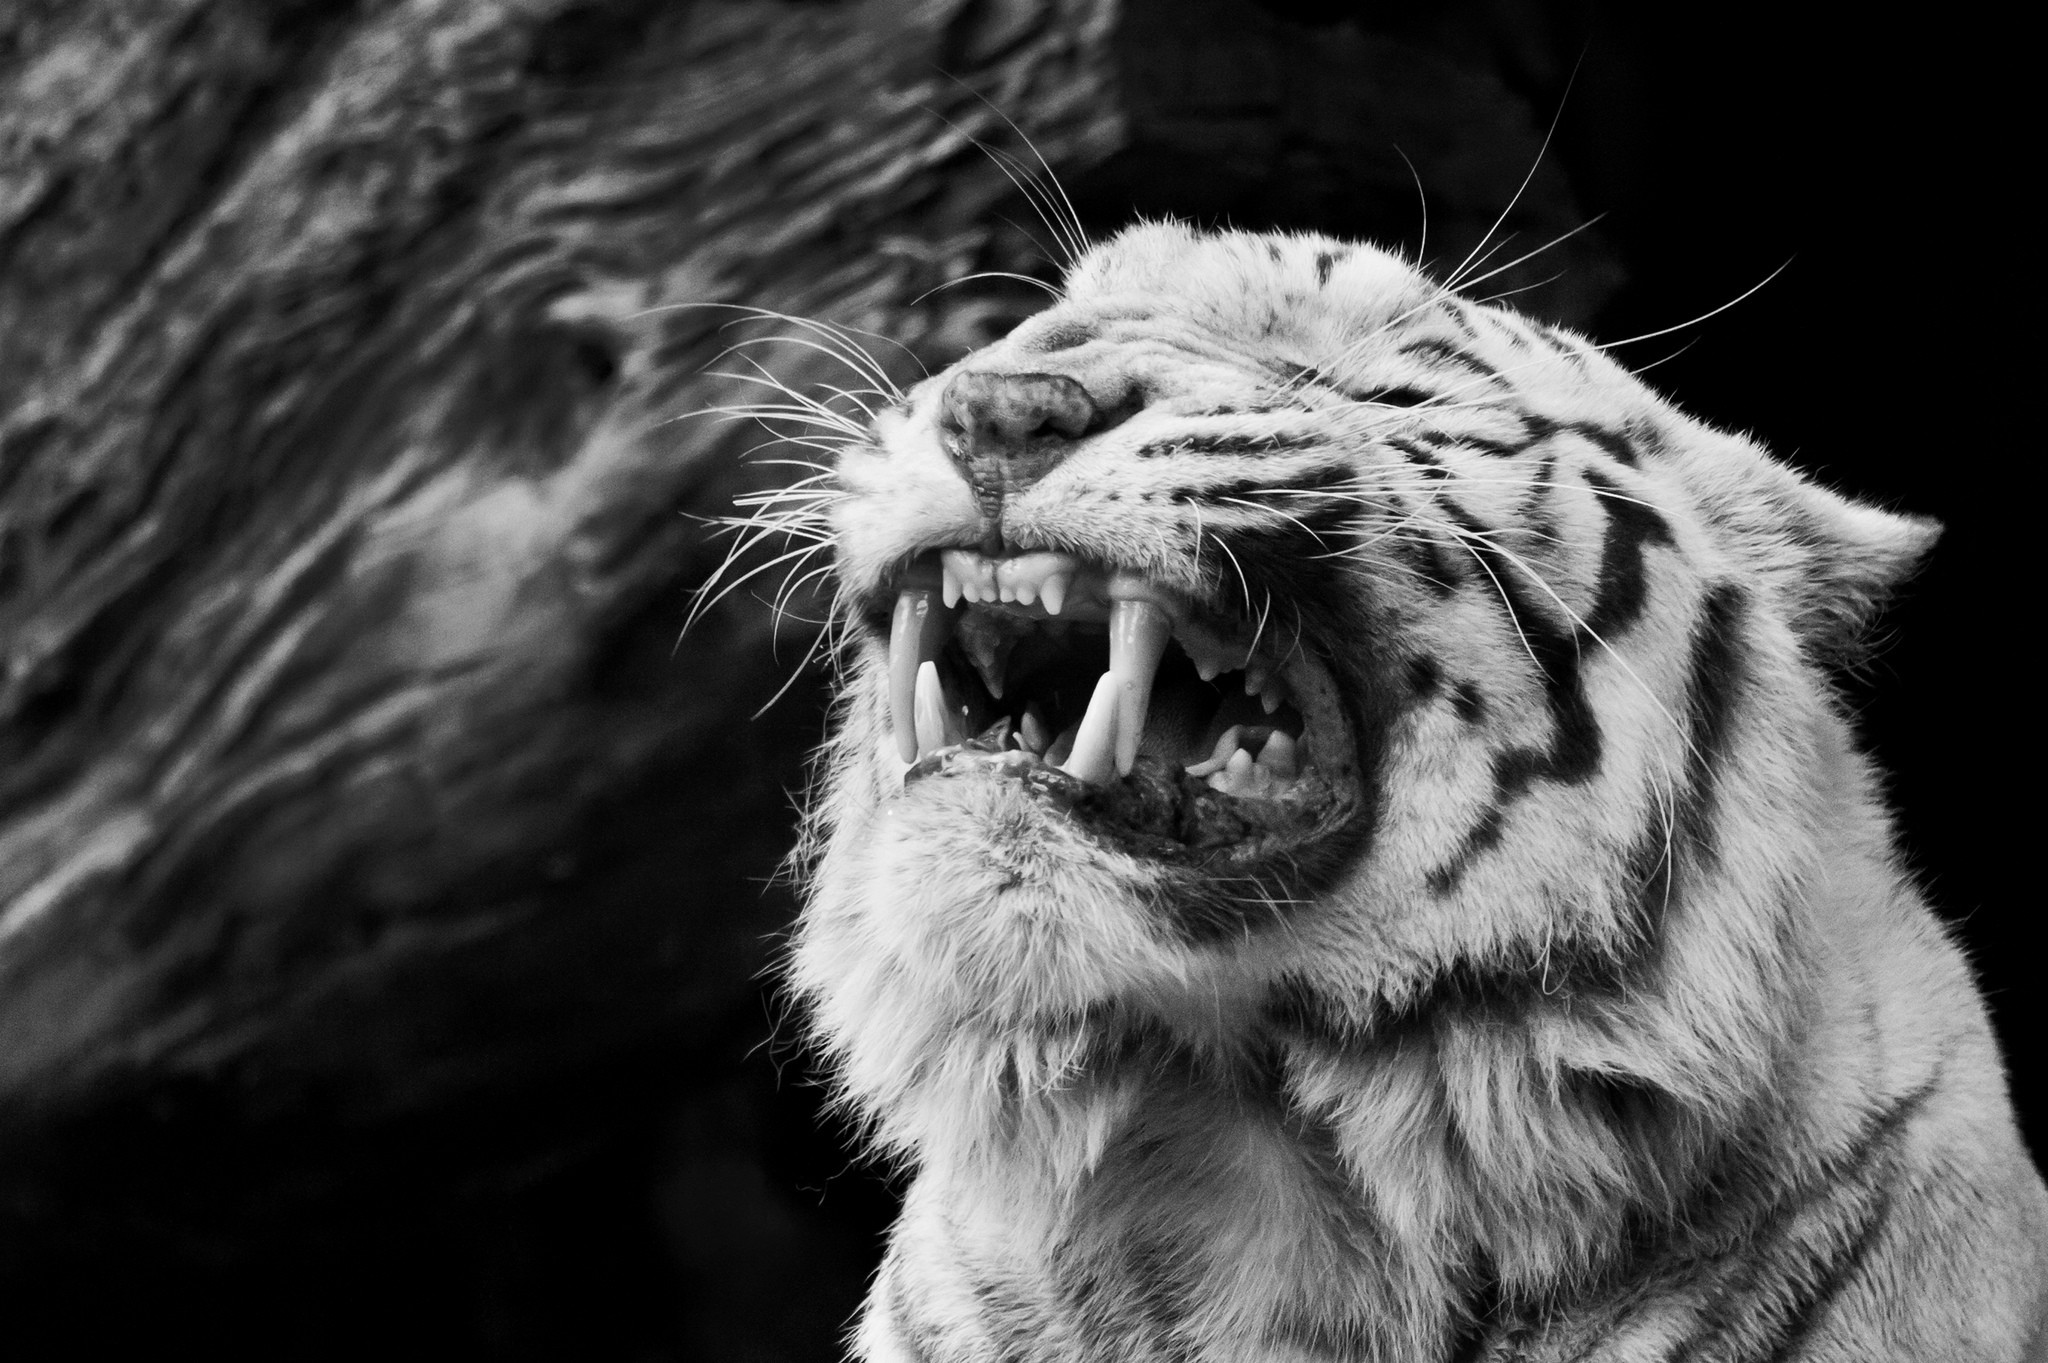 Black and White Tiger Wallpaper Free HD Desktop Wallpapers for Black And White  Tiger Wallpapers Wallpapers)